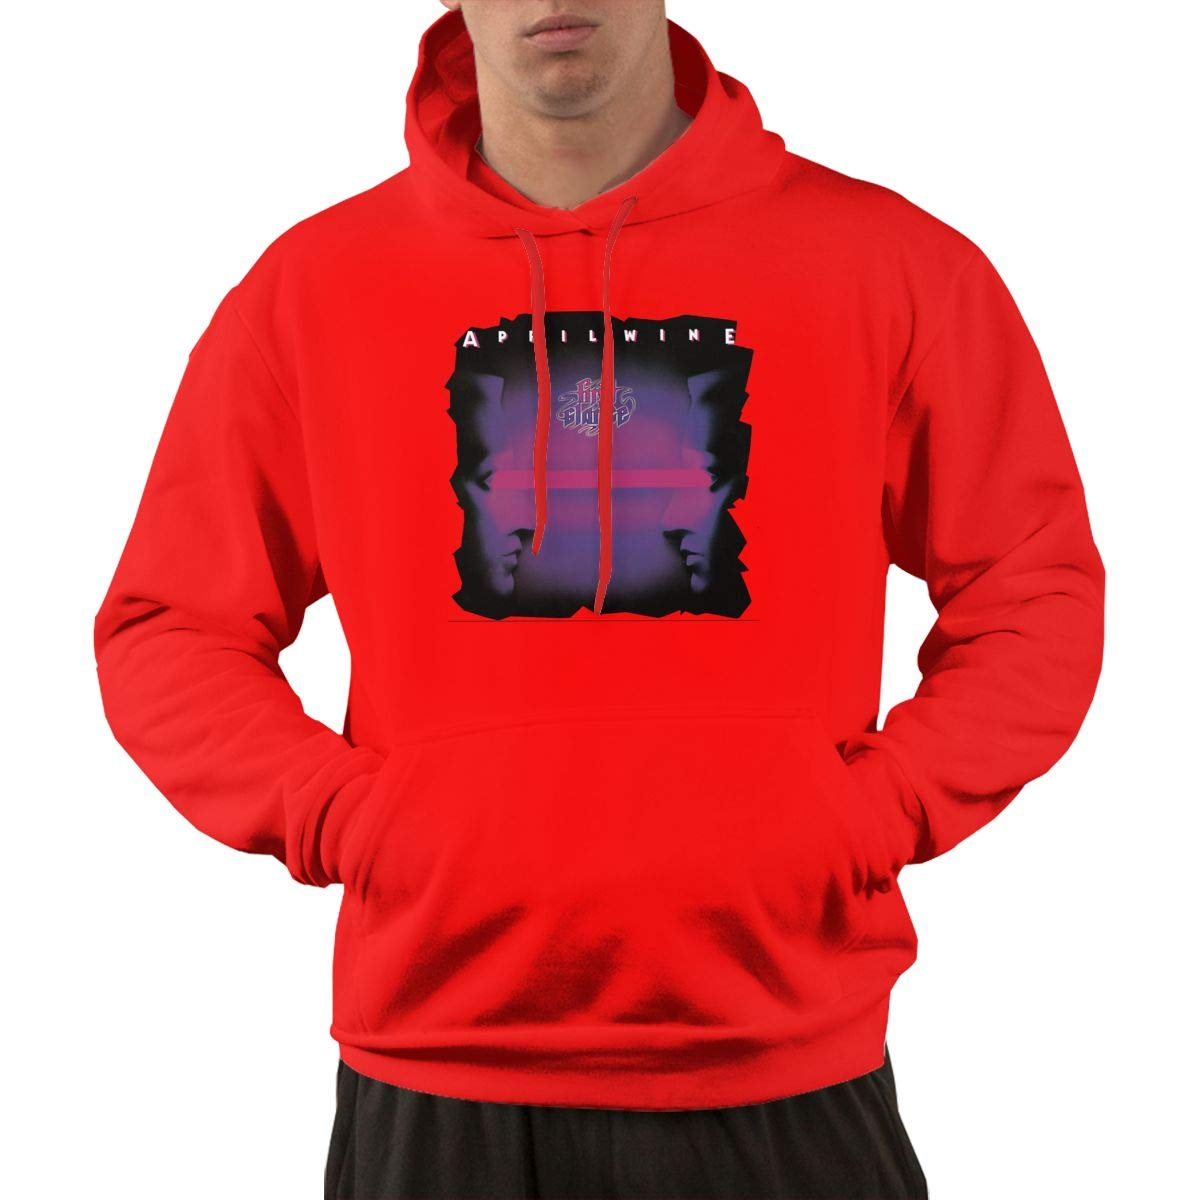 S Pullover Comfortable Red Print April Wine Band Hooded Shirts With Pocket 3